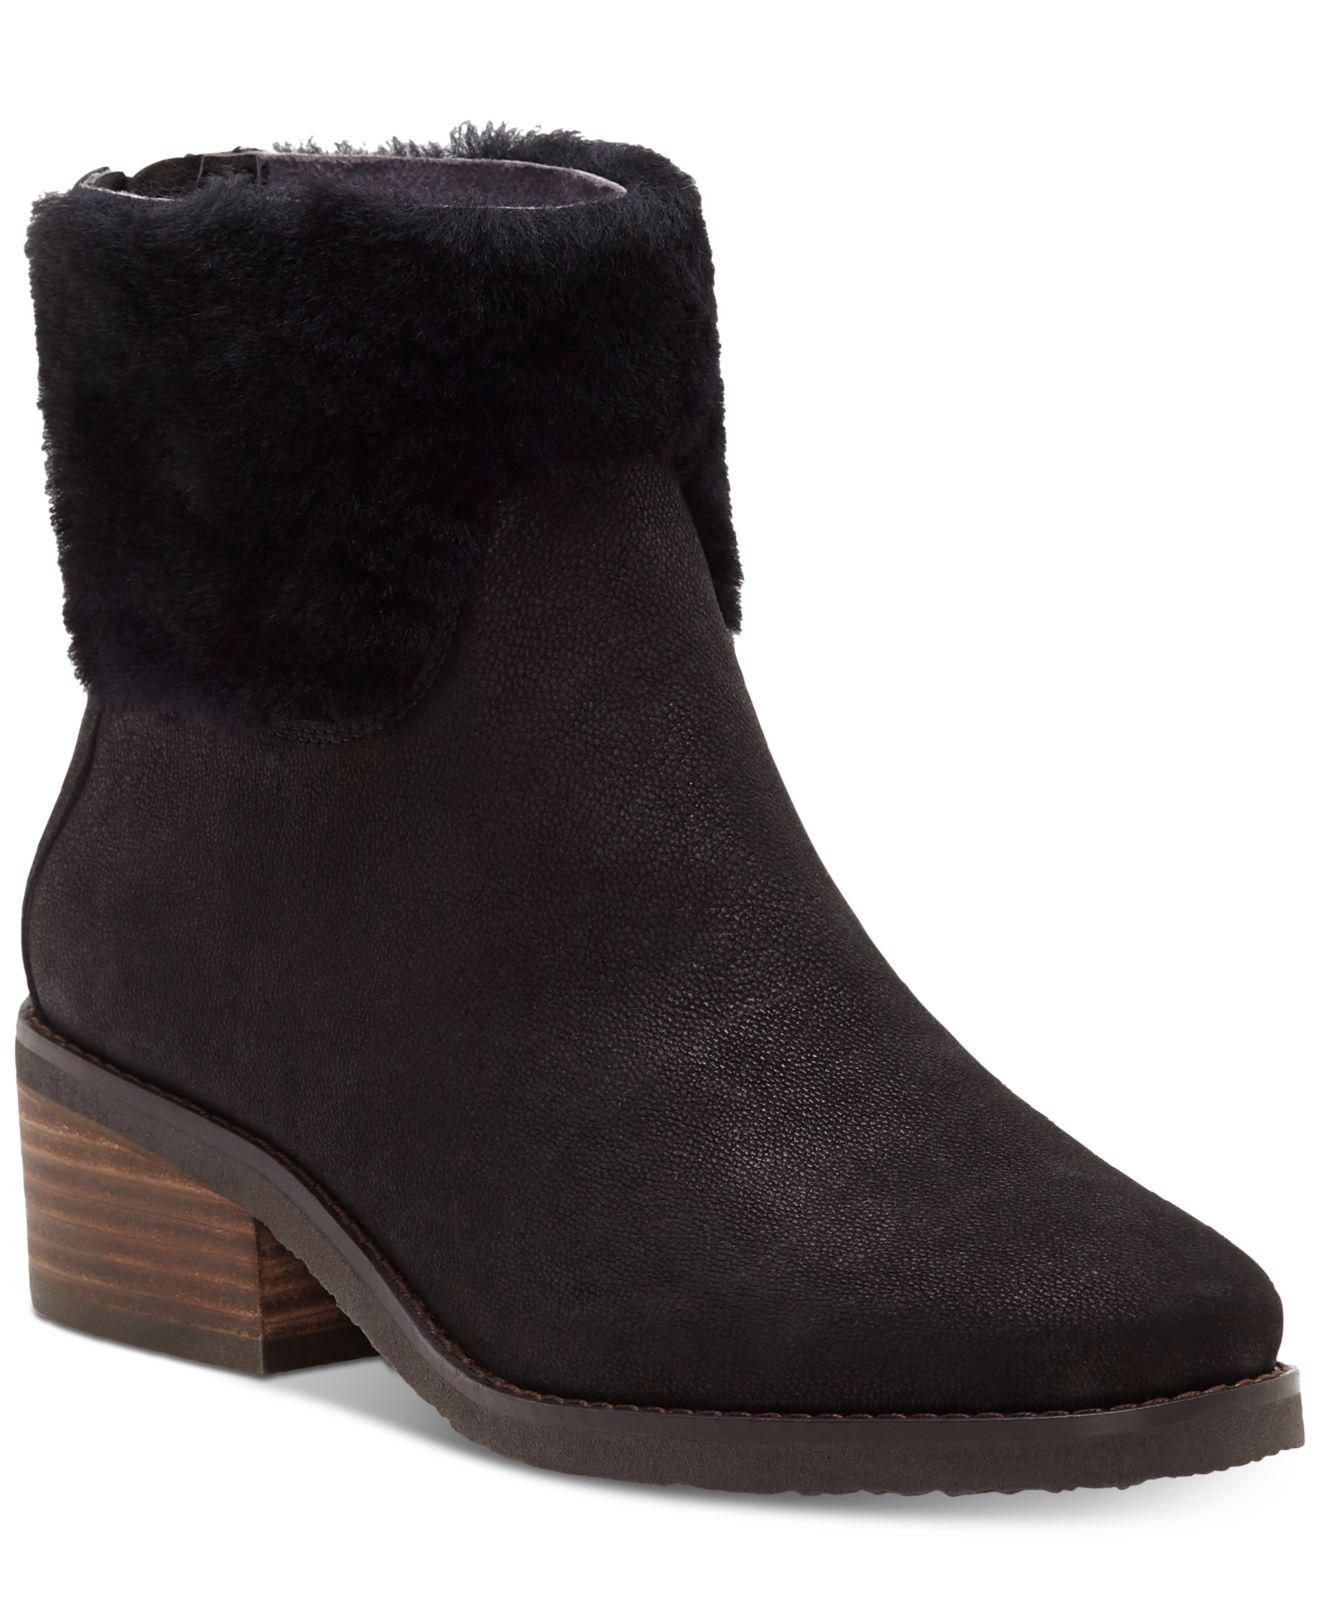 e69a05cde7c Lyst - Lucky Brand Tarina Boots in Black